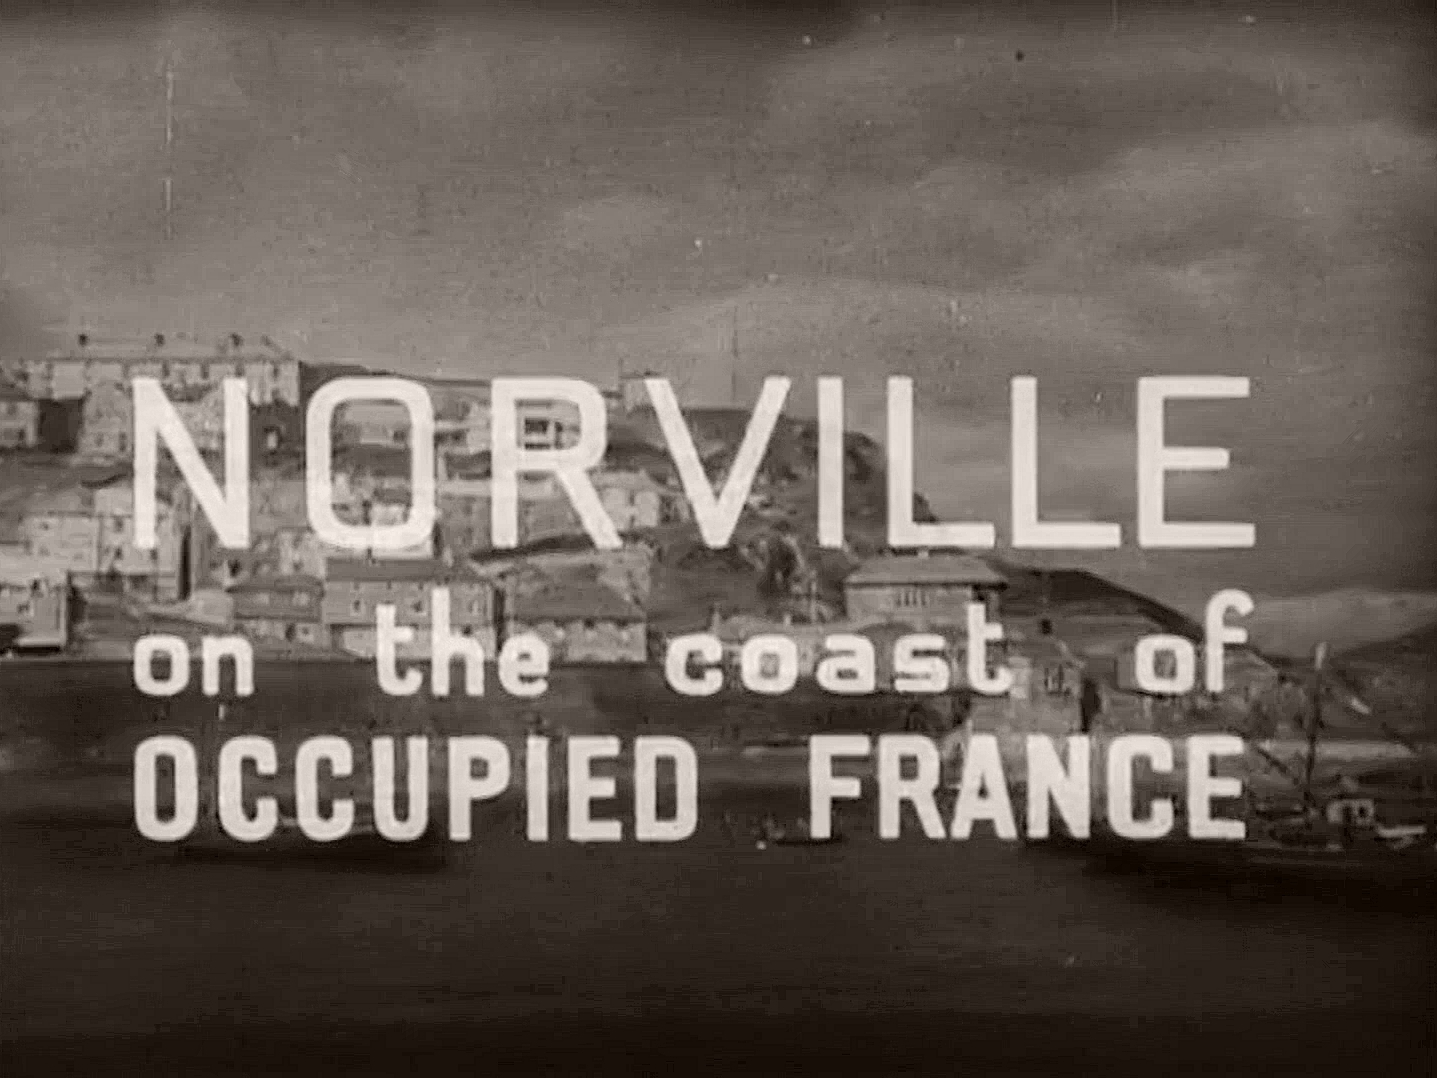 Screenshot from The Next of Kin (1942) (1). Norville on the coast of occupied France